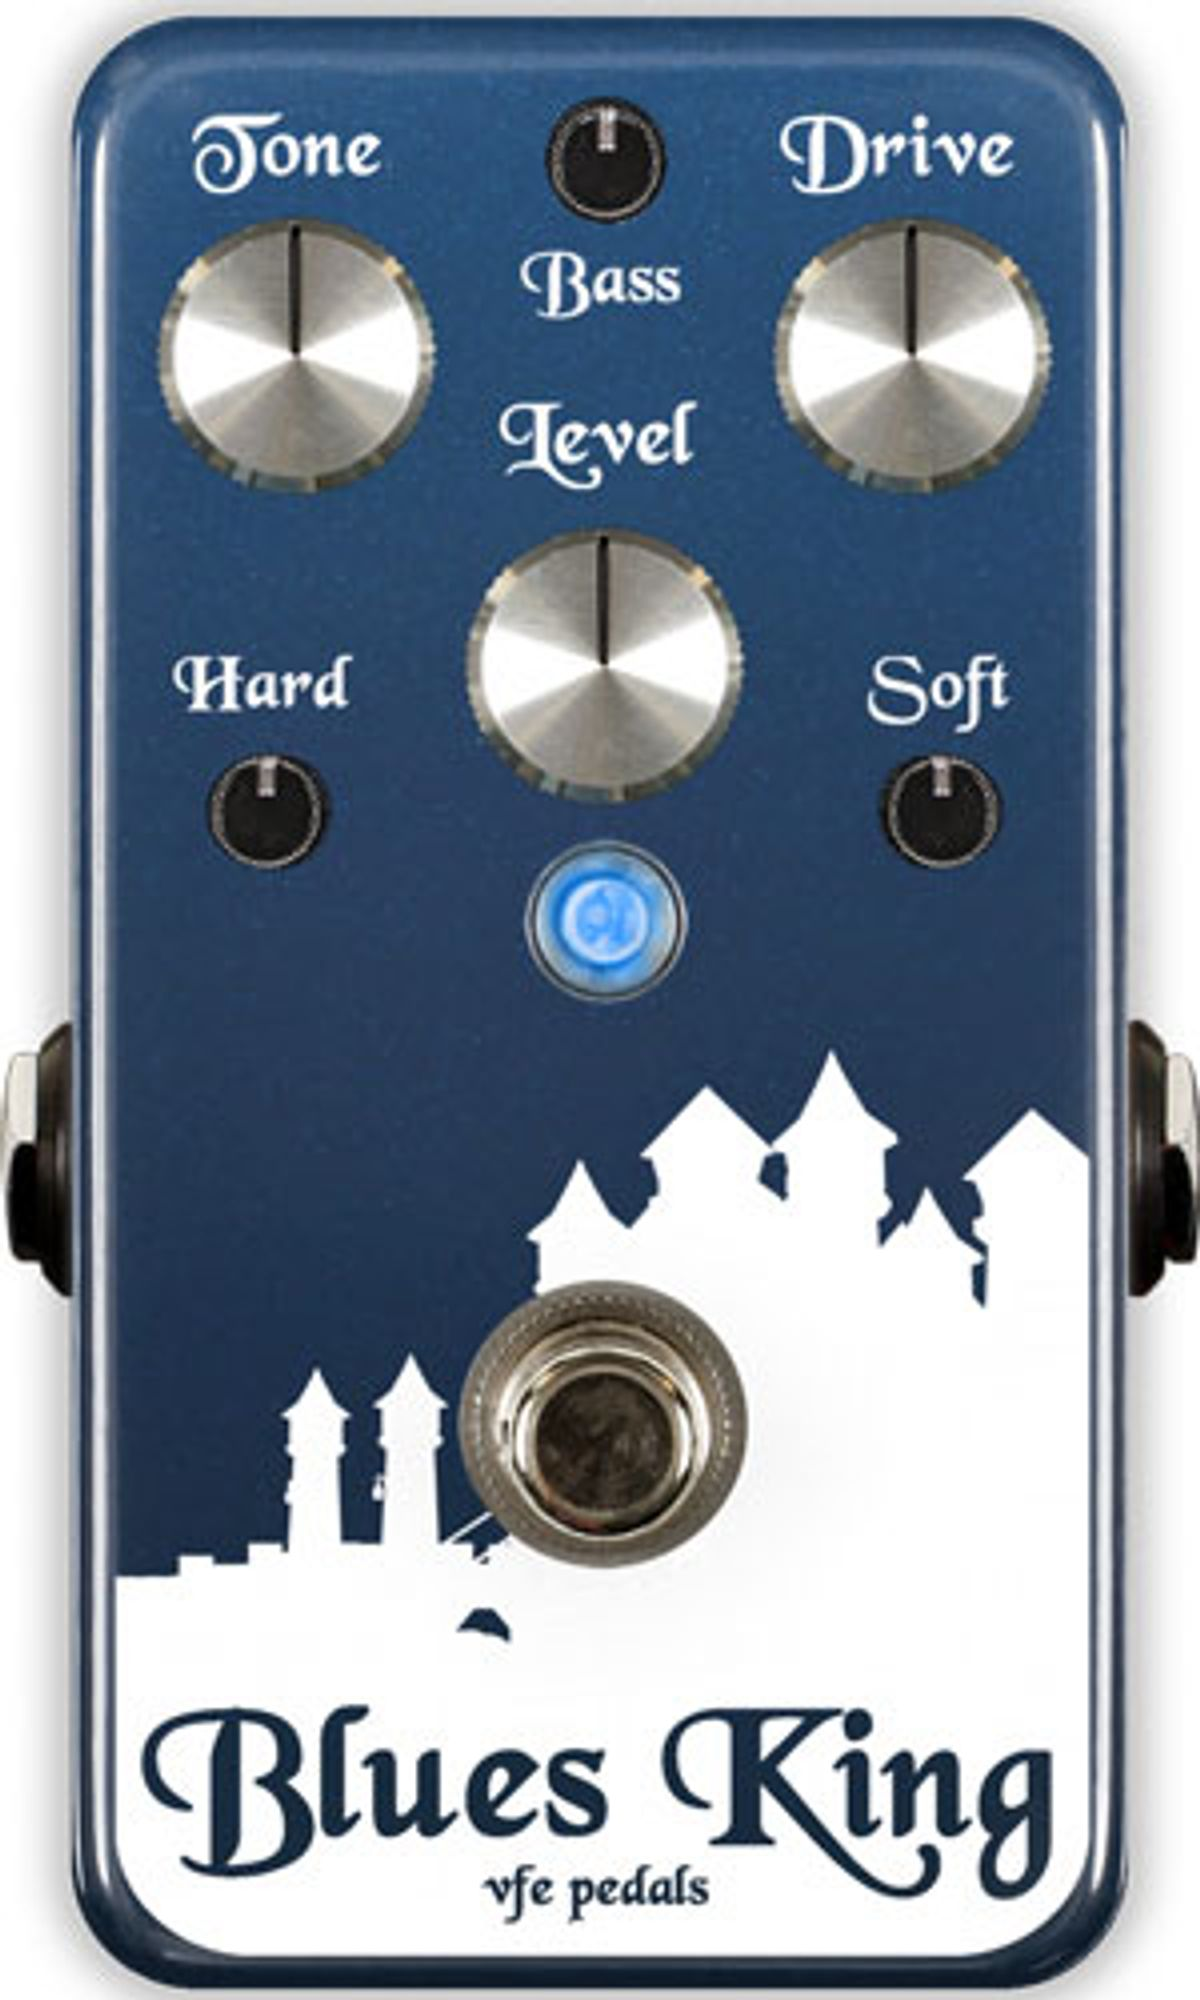 VFE Pedals Releases the Blues King V3